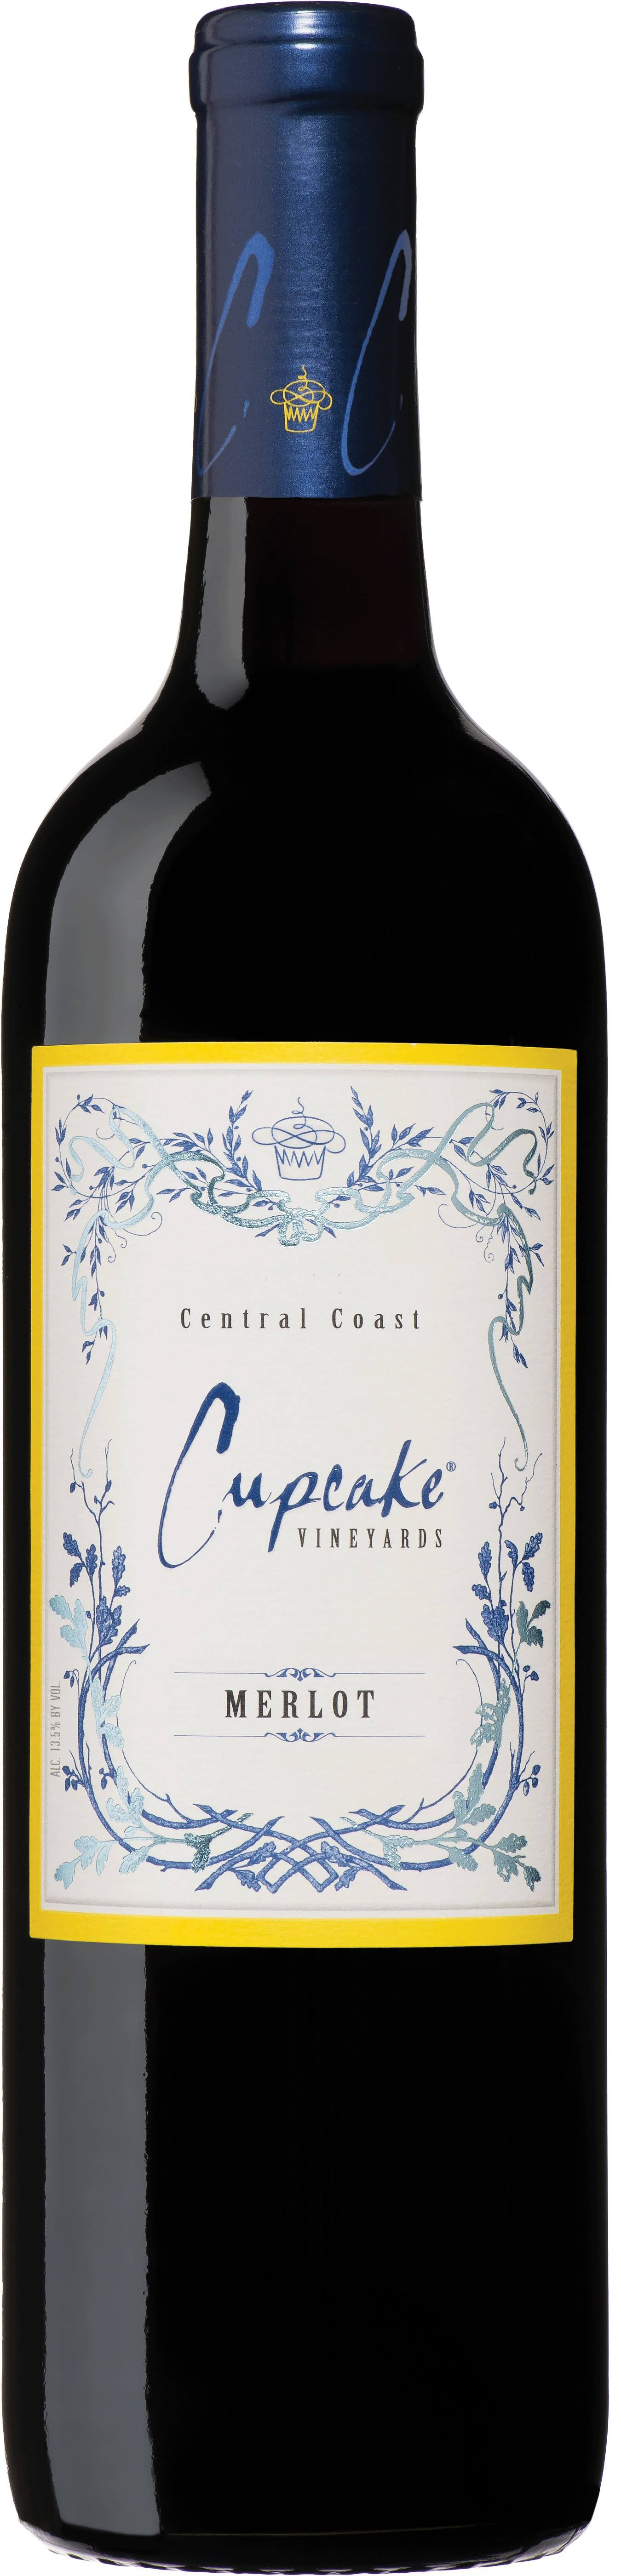 Cupcake Vineyards Merlot